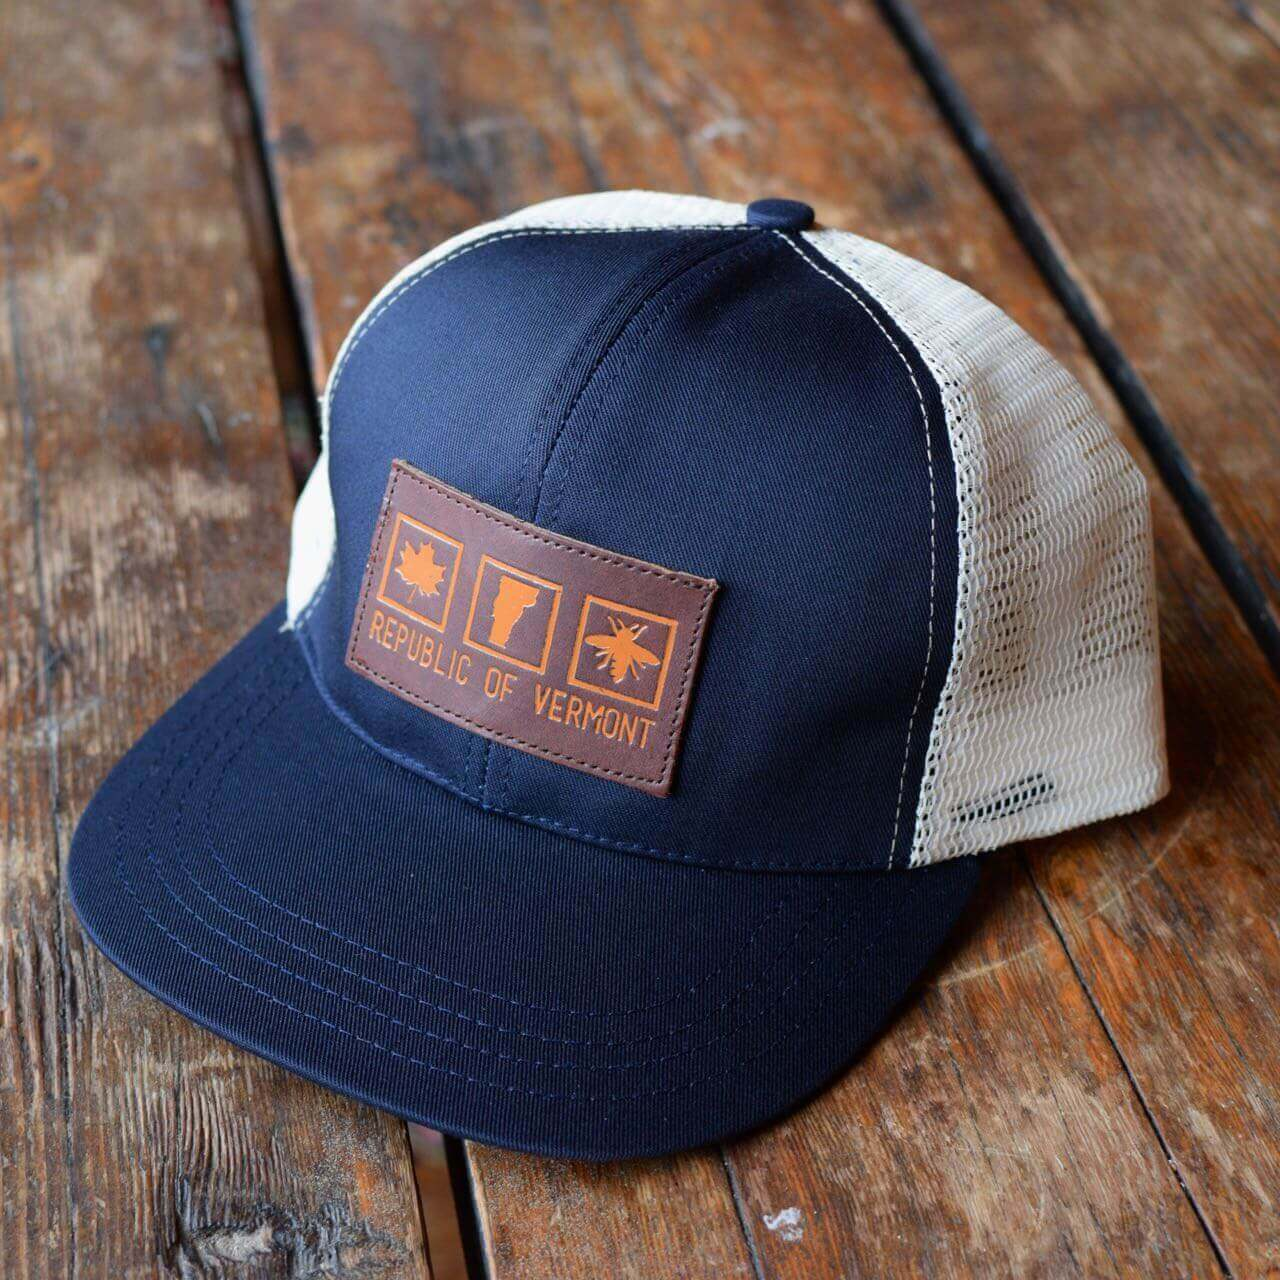 Republic Of Vermont Trucker Hat